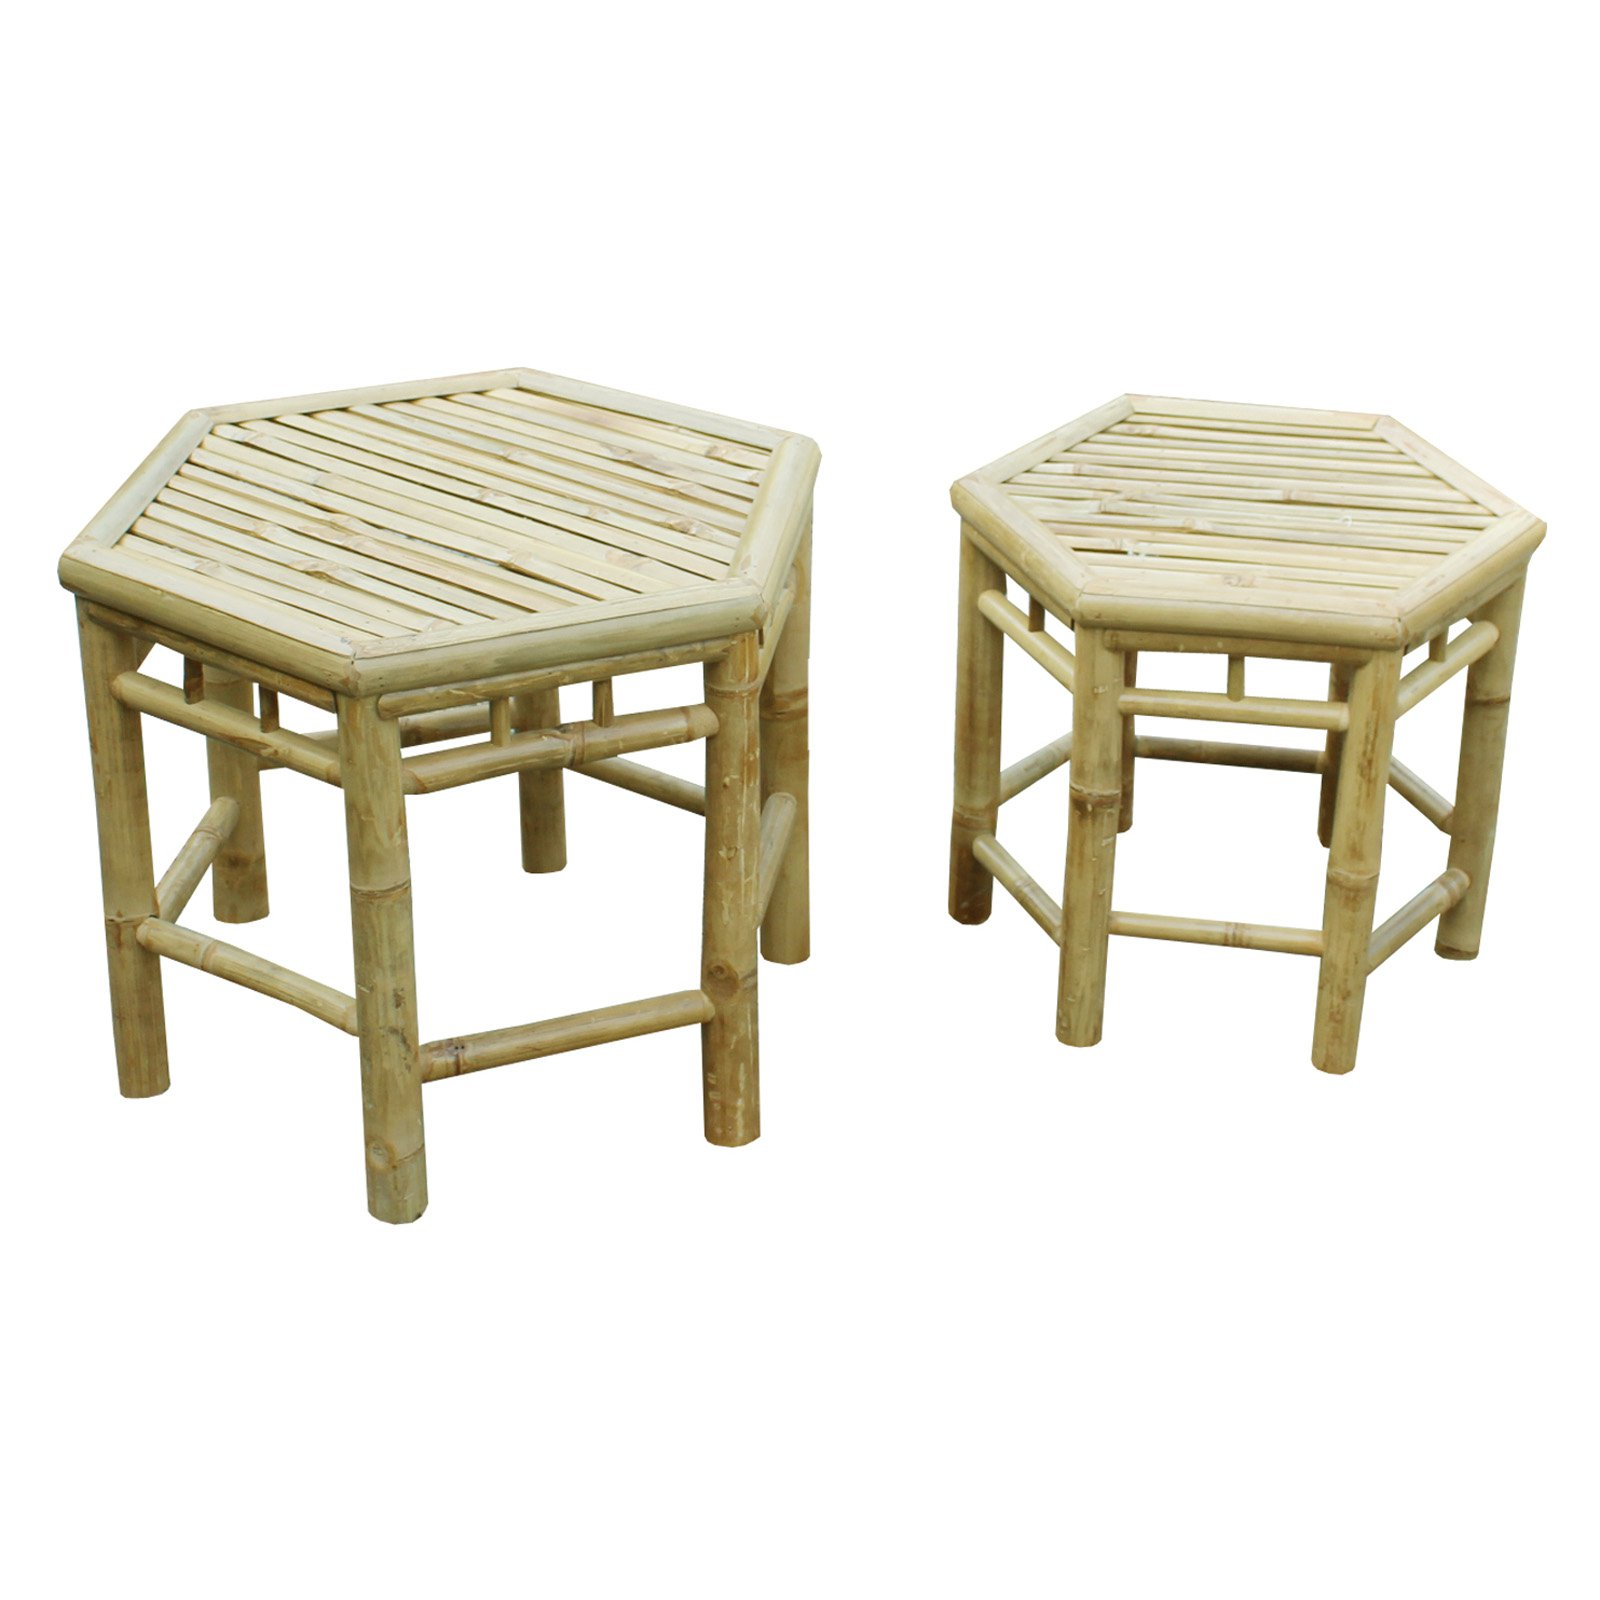 Zew Hand Crafted Bamboo Indoor/Outdoor End Tables - Set of 2